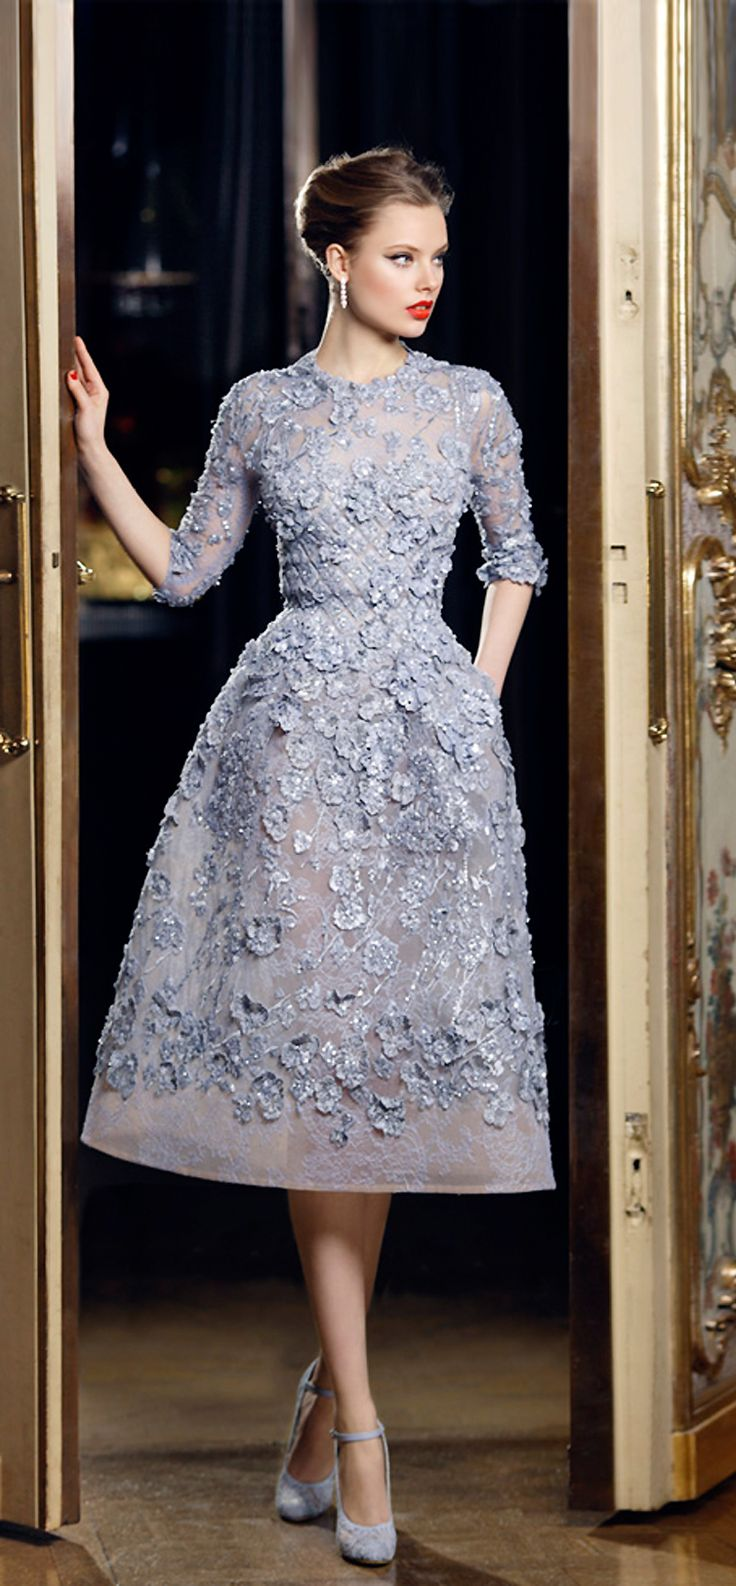 Best dresses to wear to a wedding   best images about Ready for the Ball on Pinterest  Models Lace